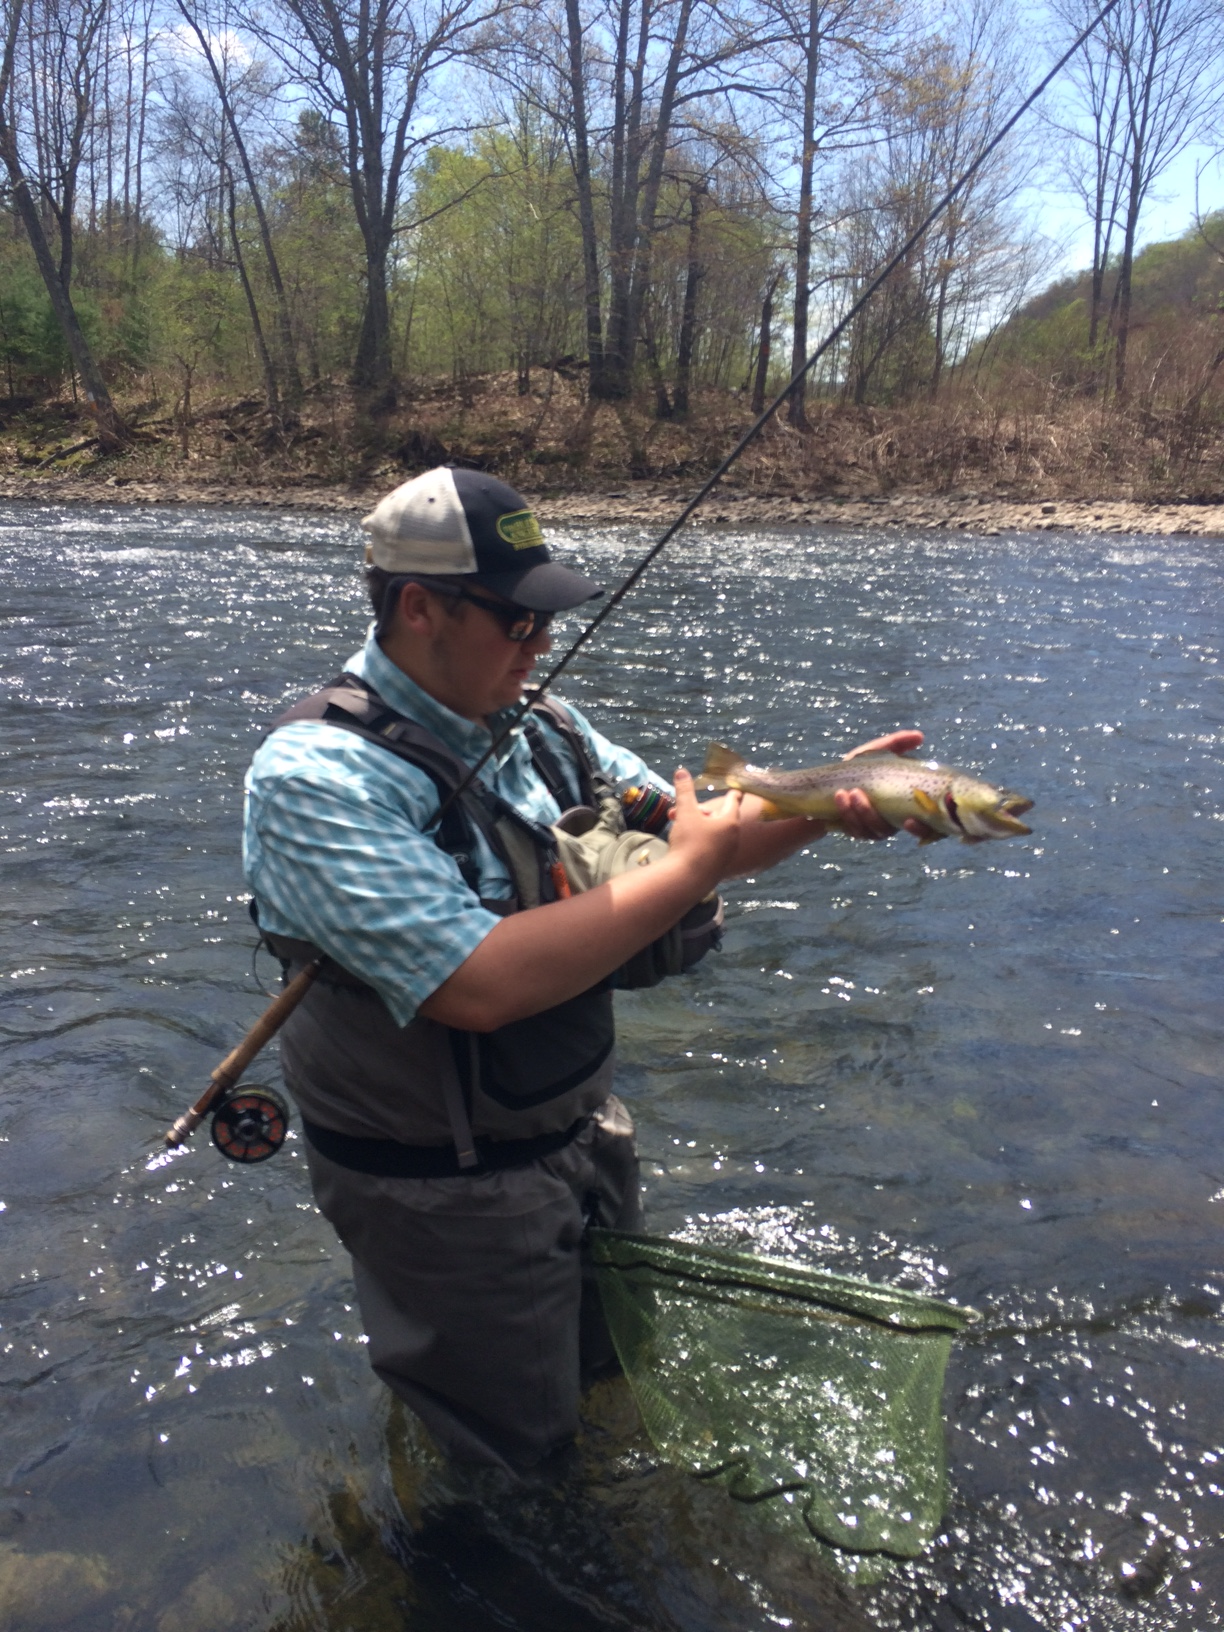 Alex working it while on a trip to the Beaverkill with oher Team USA members and Matt Grobert.